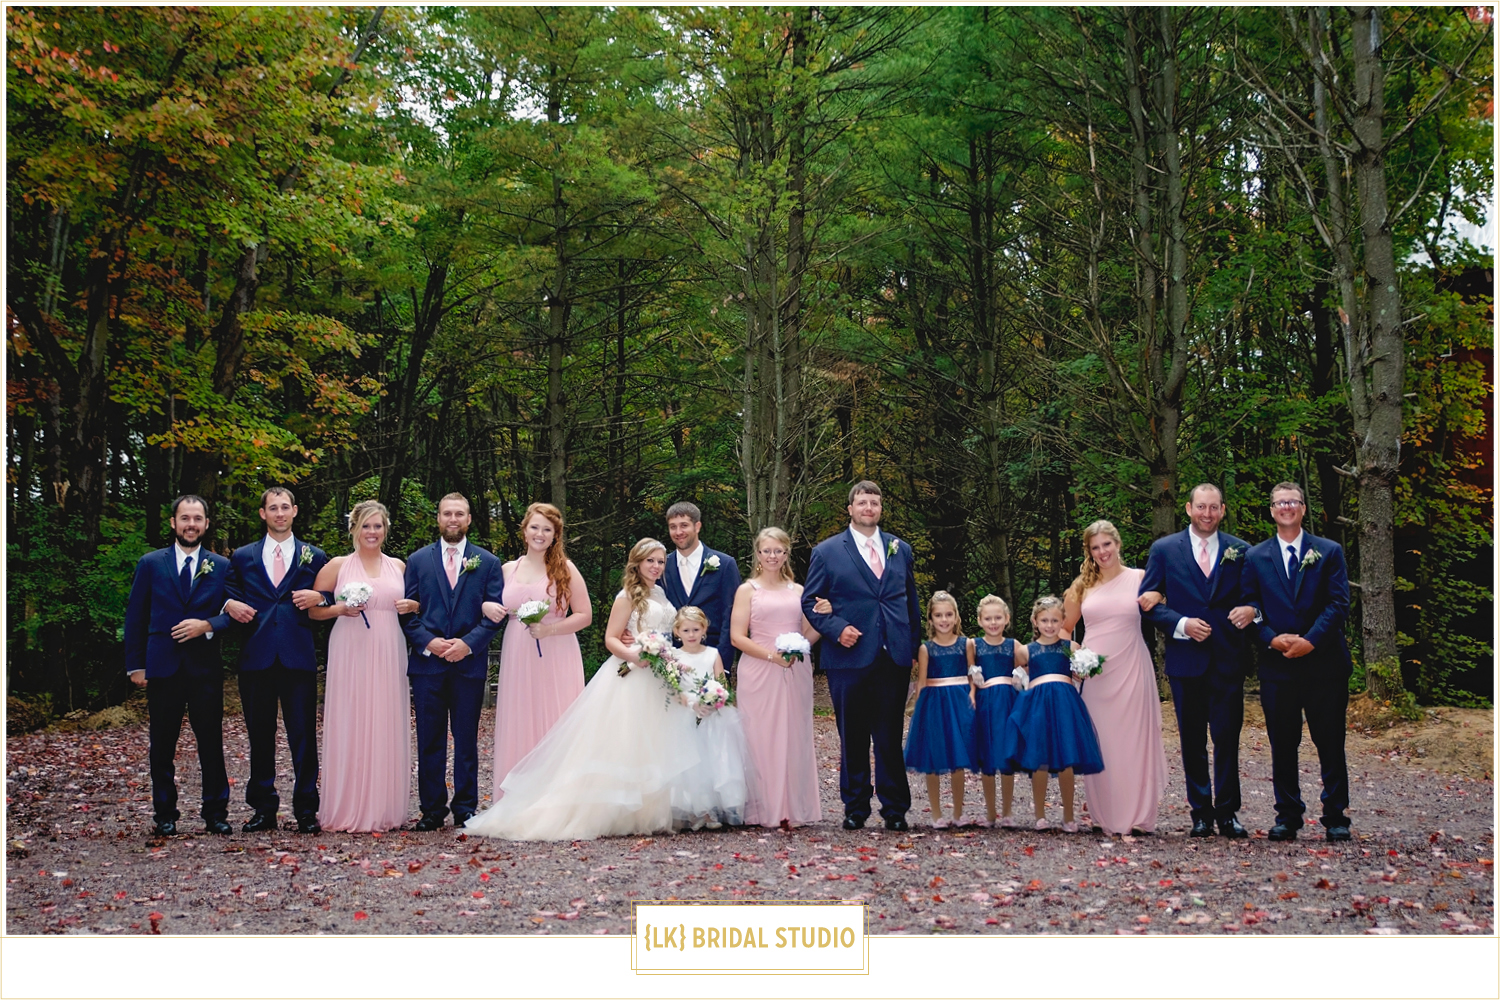 Lk Design Amp Photography Jamie Brady Wedding Swan Barn